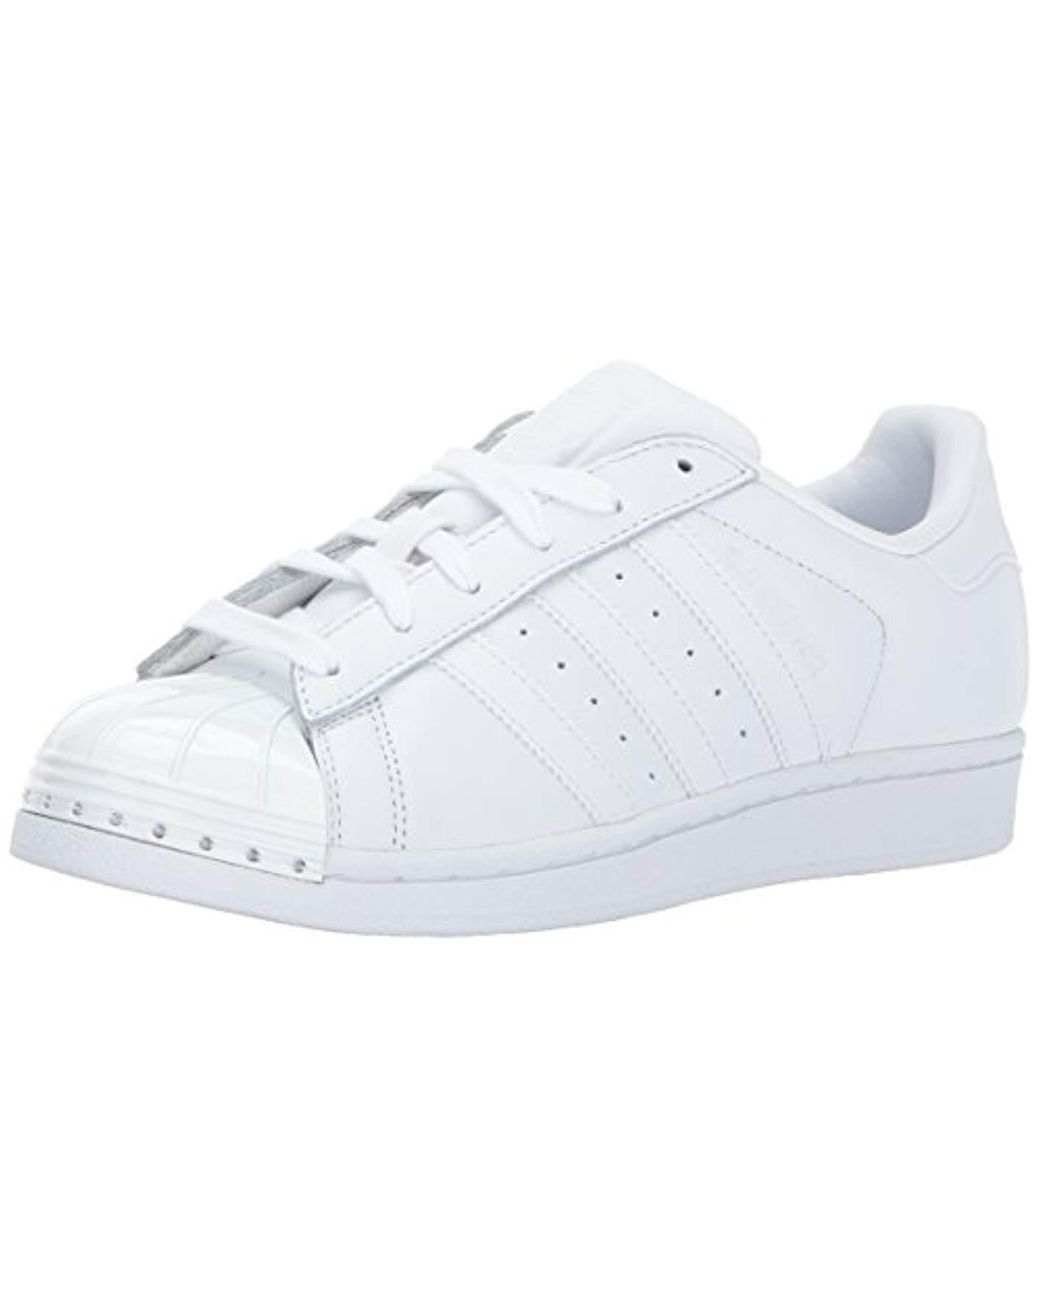 reputable site a45d5 20e83 Women's White Superstar Metal Toe W Skate Shoe Running